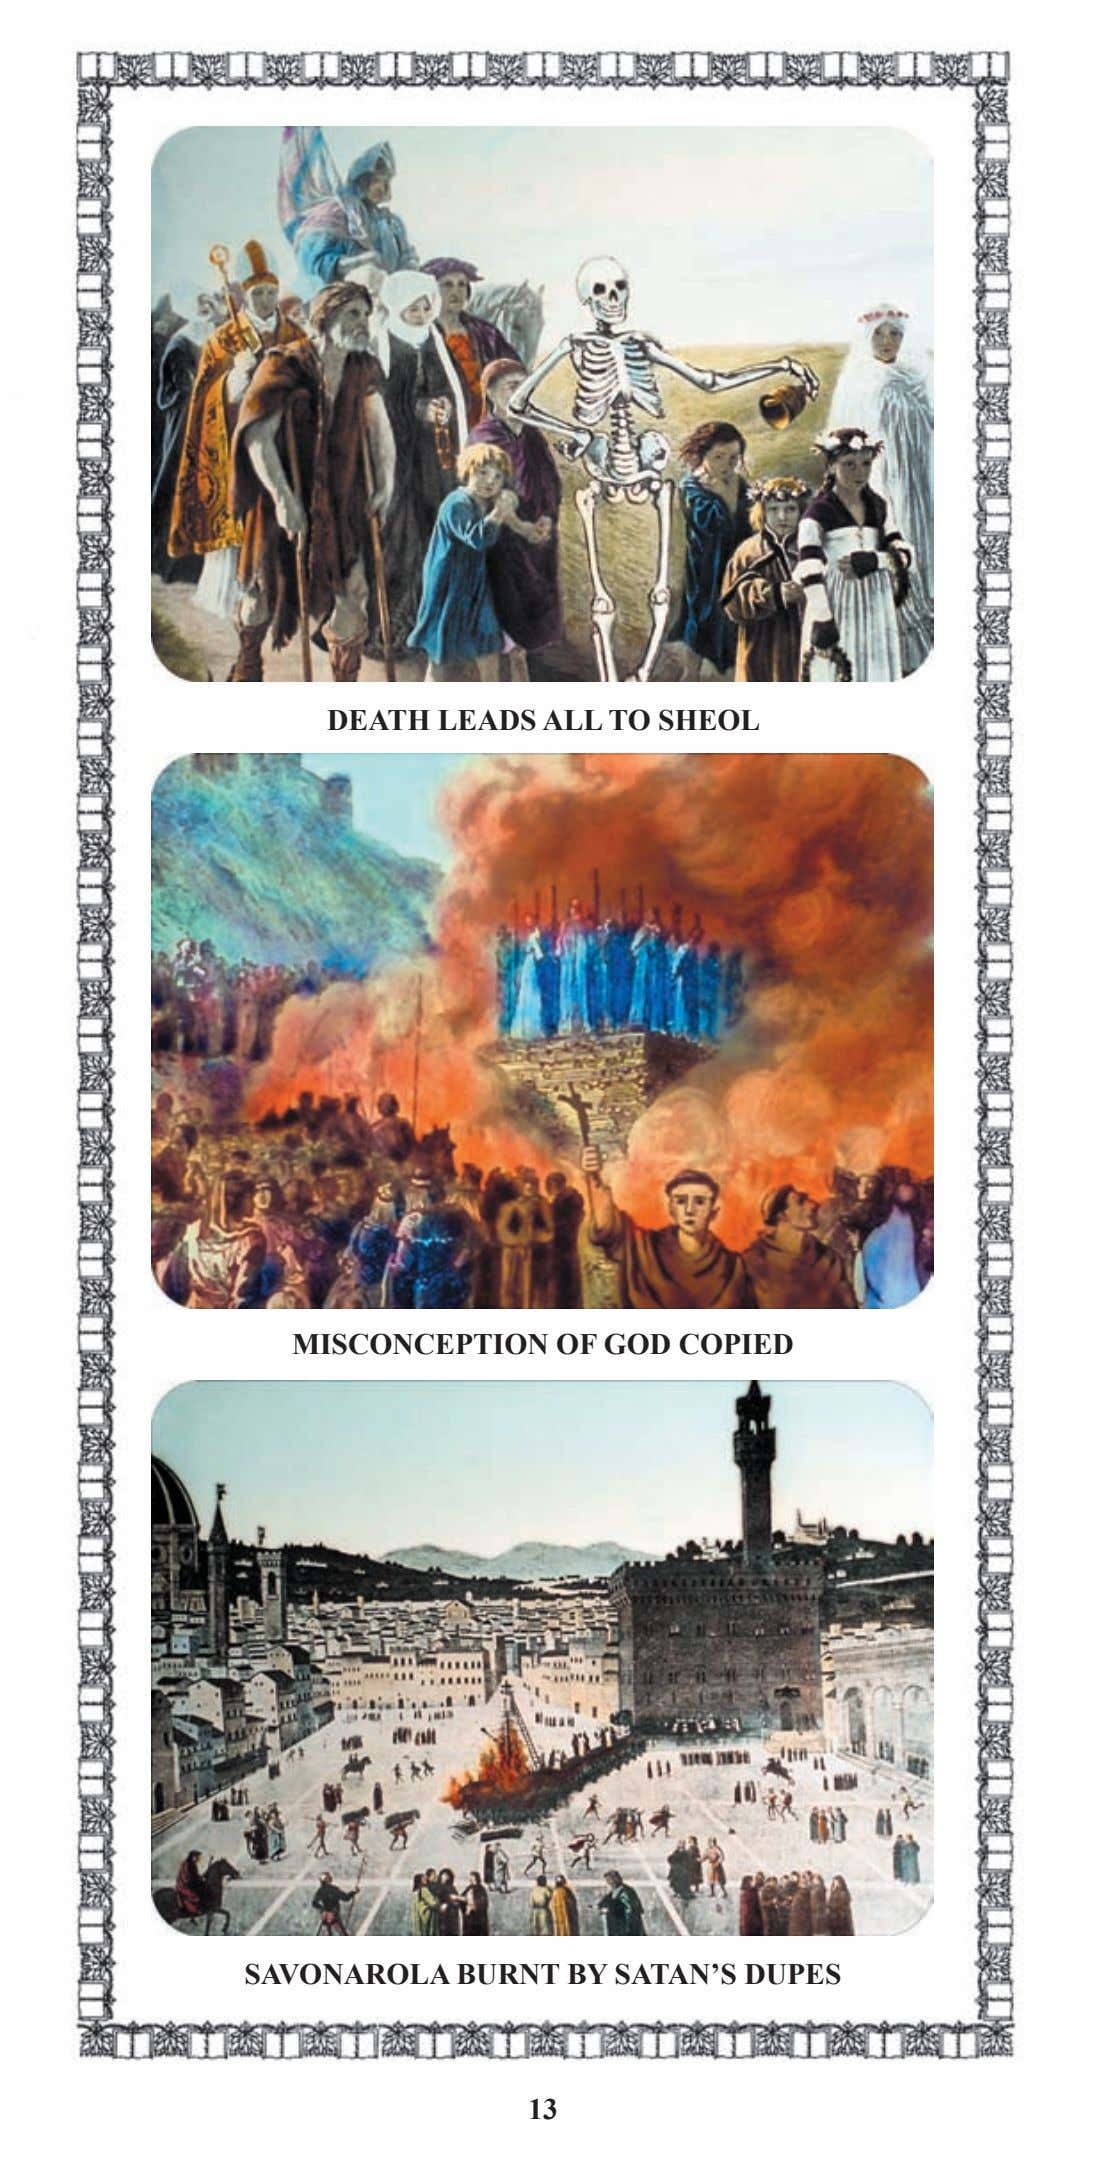 DEATH LEADS ALL TO SHEOL MISCONCEPTION OF GOD COPIED SAVONAROLA BURNT BY SATAN'S DUPES 13